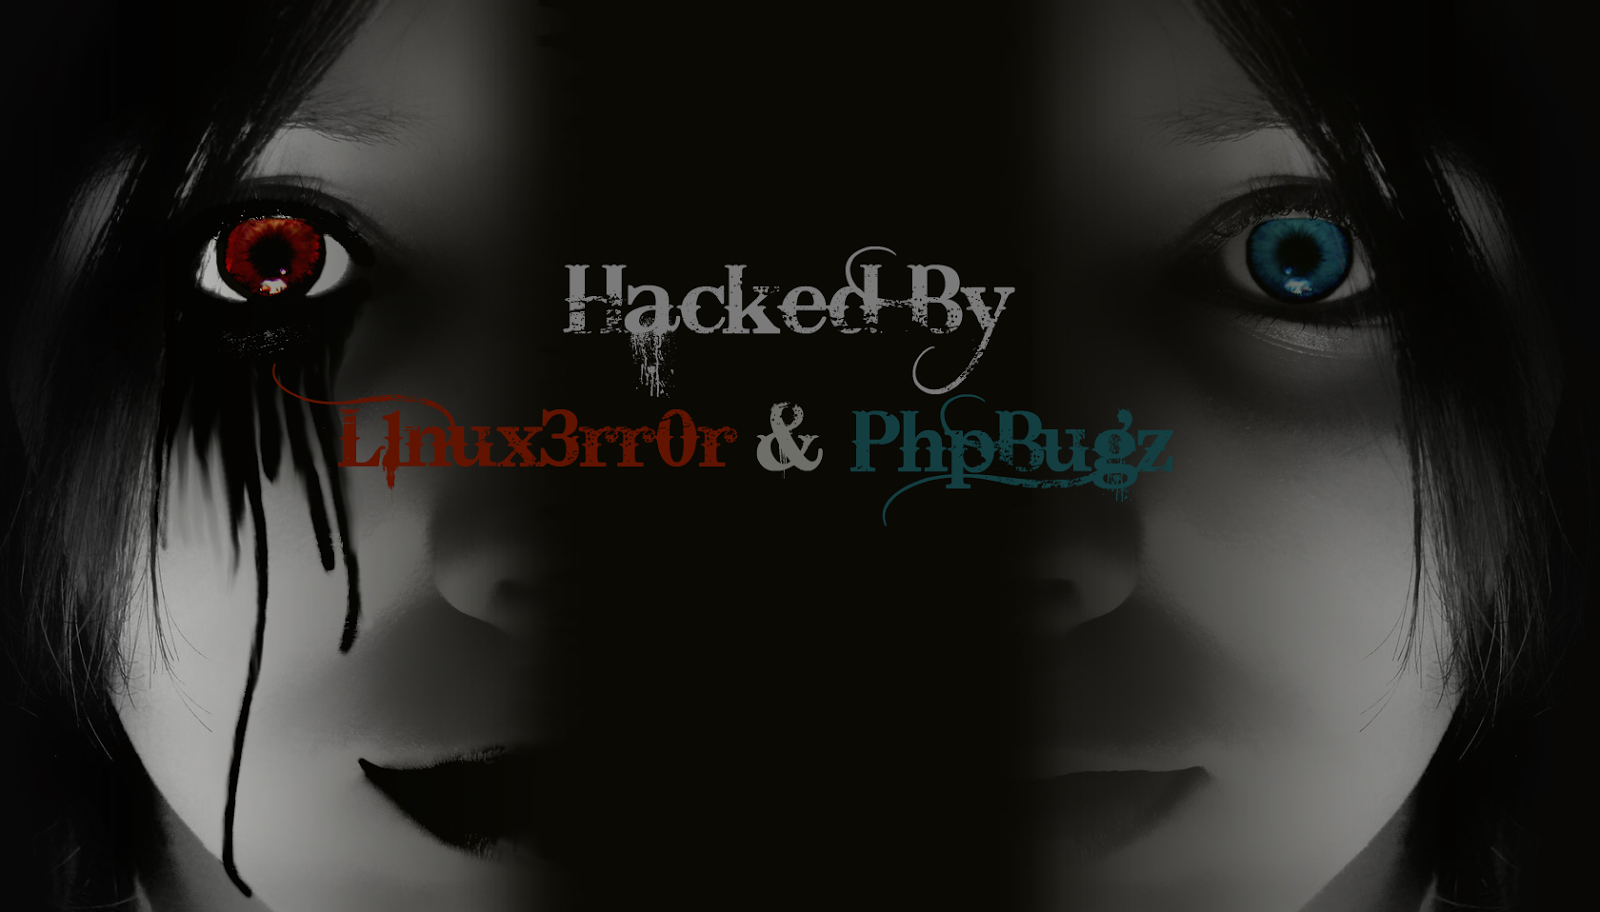 Hackers Wallpaper HD By Pcbots - Part-IV ~ PCbots Labs (Blog)